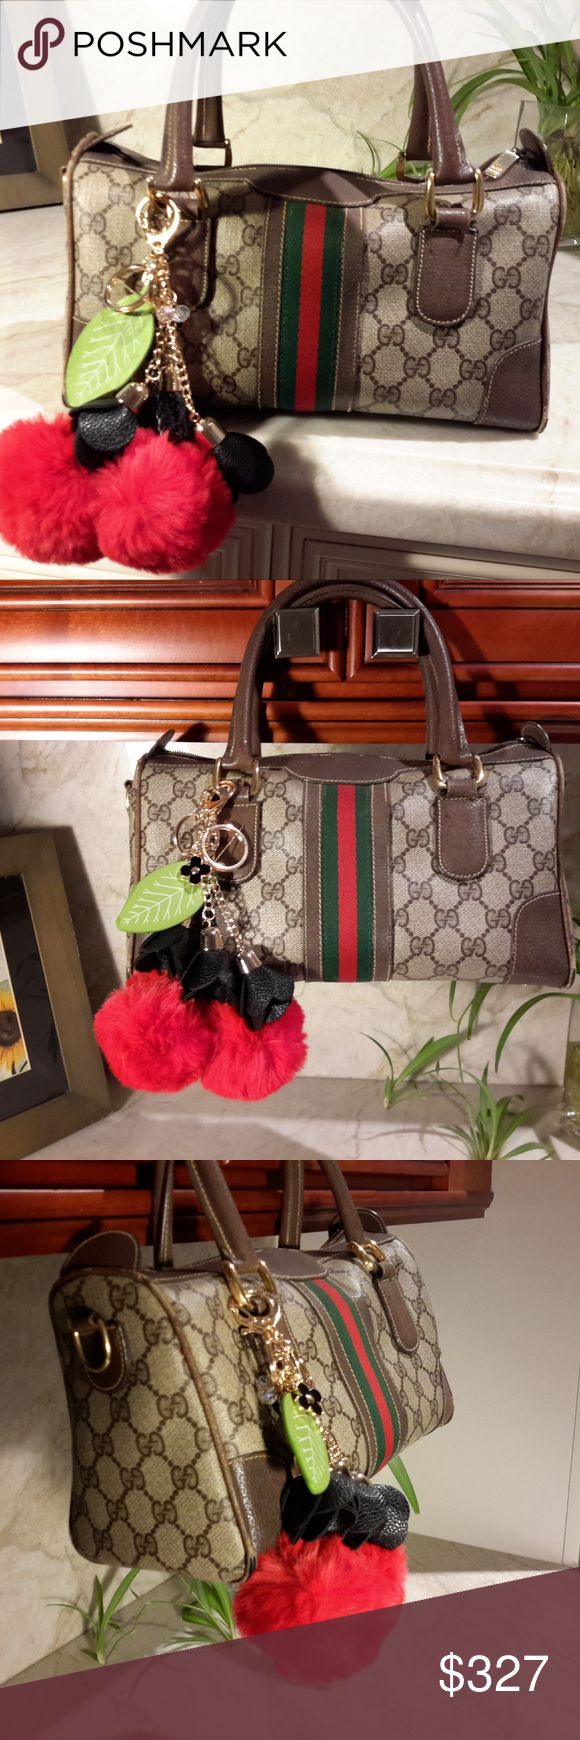 GUCCI Boston Doctor Handbag Red & Green ribbon 100% Authentic GUCCI  Exterior monogram great condition Vintage 1960/70 bag and is NOT perfect but SUPER CUTE!  Comes styled w 2 sets purse key ring charms *  Cherry Cerises Pompoms *  Black leather flowers with LV enamel fleur   Straight stitching, slight strings pulled See pics. Normal pen marks inside, worn corners on bottom  Bottom has 4 feet Zipper works on top & inside pocket Loosed threads/rip of edge by zipper does not affect zipper. Can…